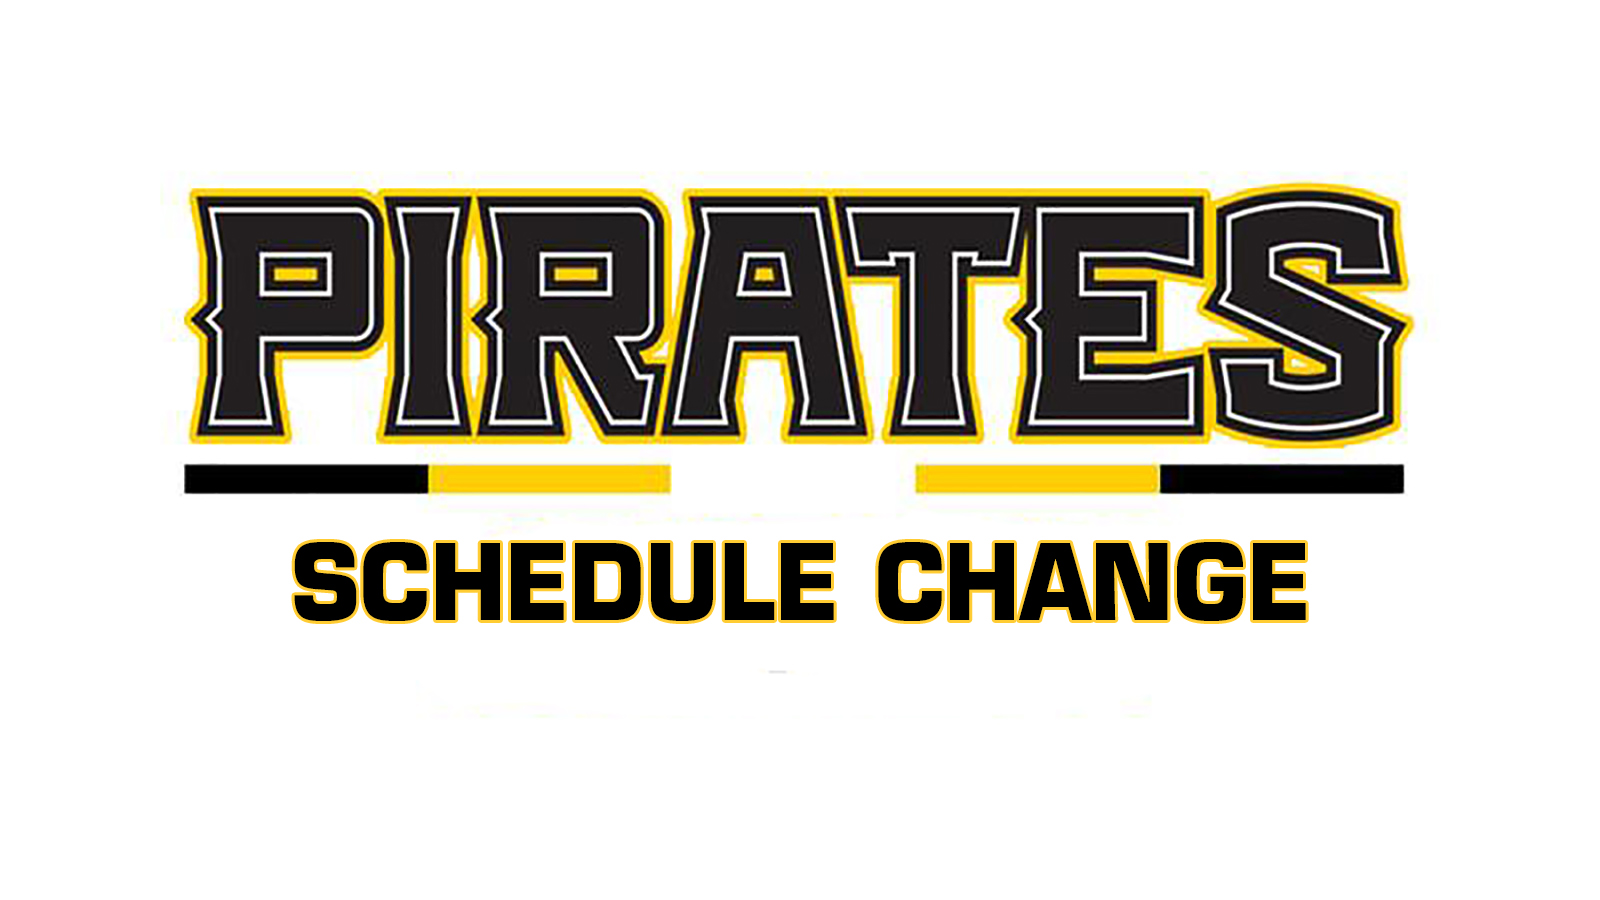 Schedule Changes for Baseball this week